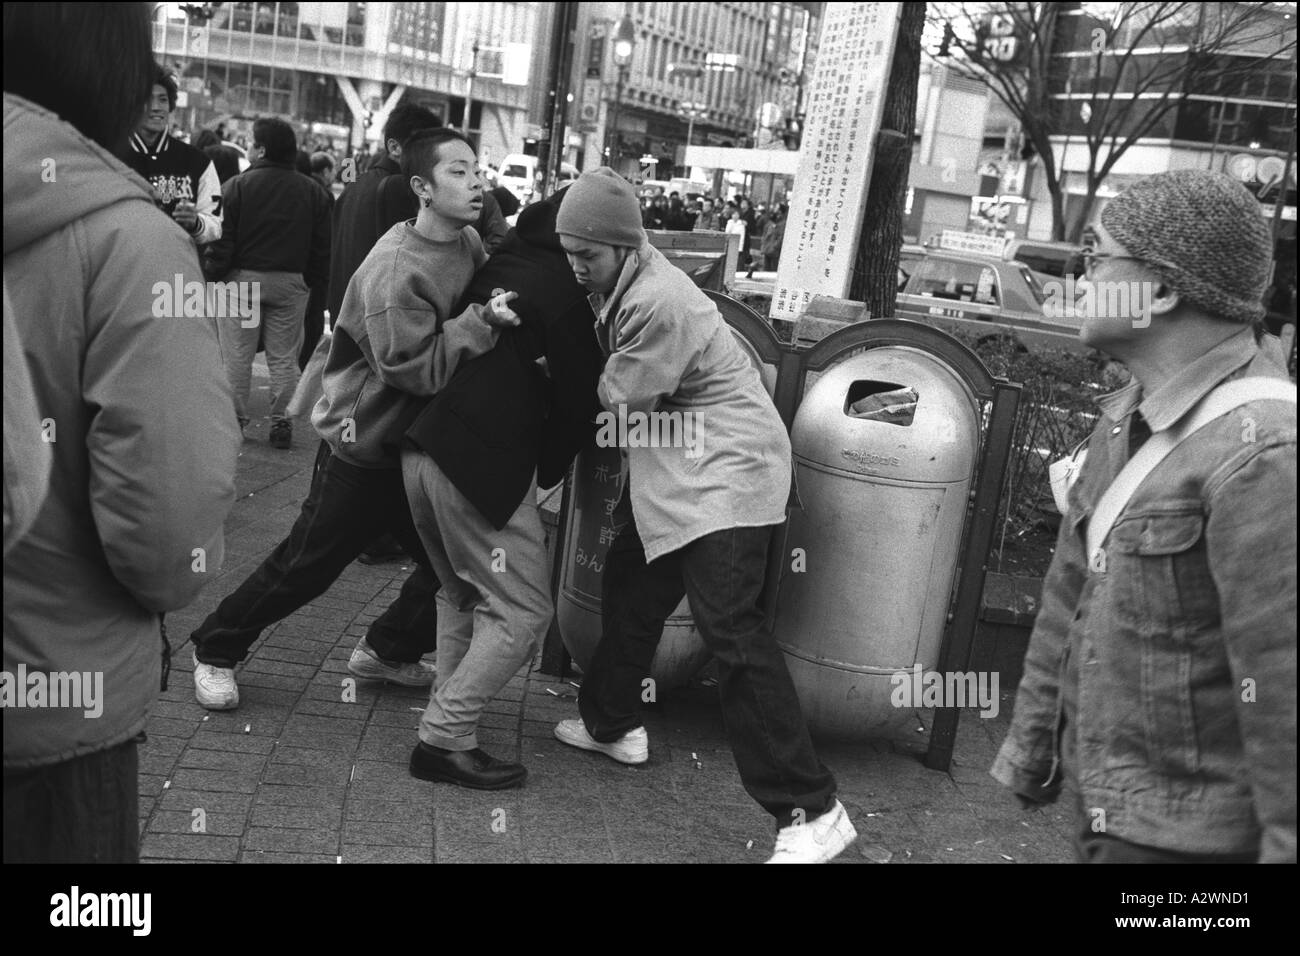 young Japanese men fighting on the street outside the Shibuya train station, Tokyo, Japan - Stock Image